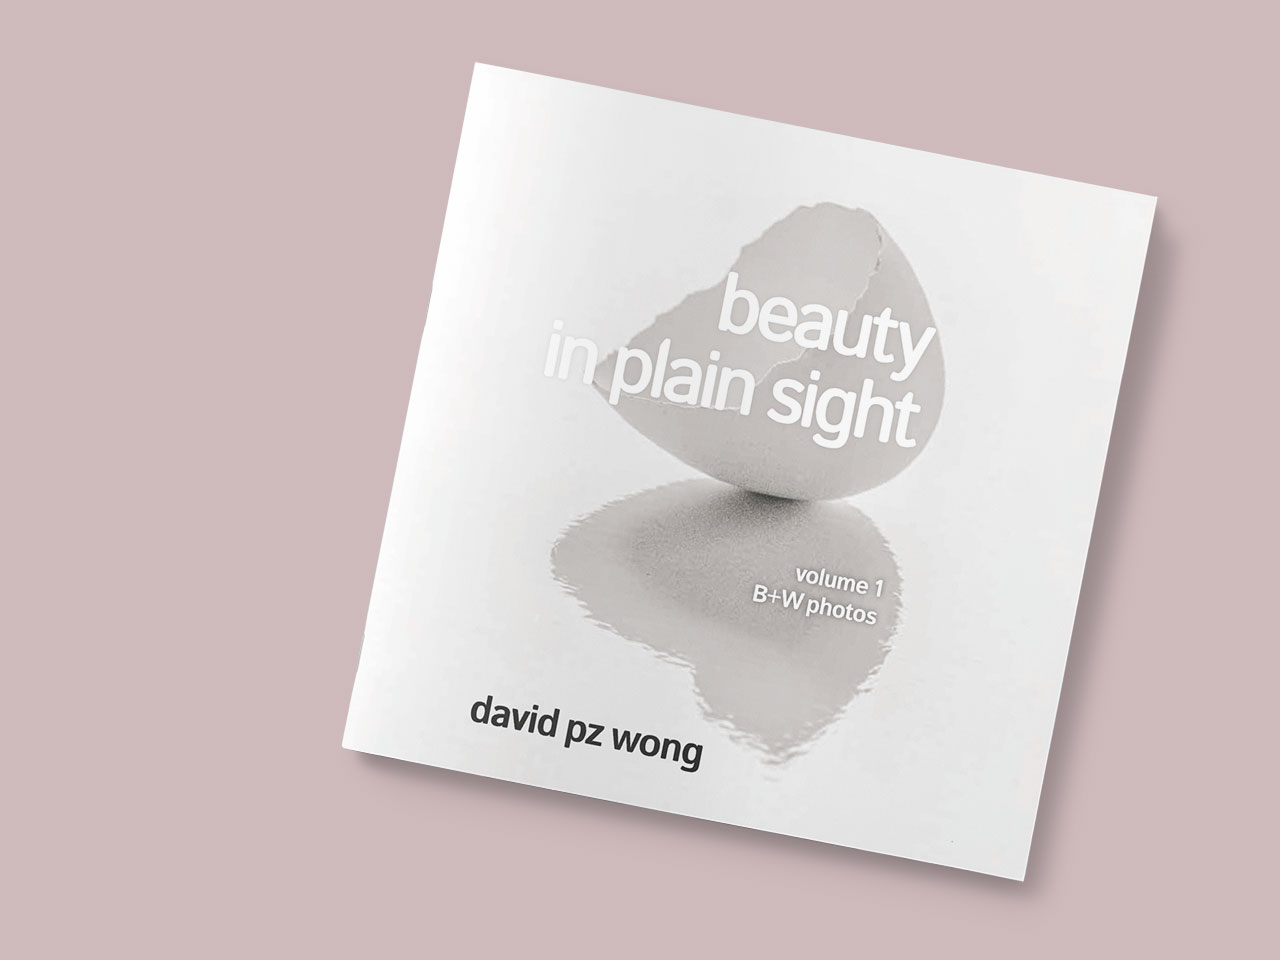 Alternate cover concept for Beauty in Plain Sight featuring a broken egg shell